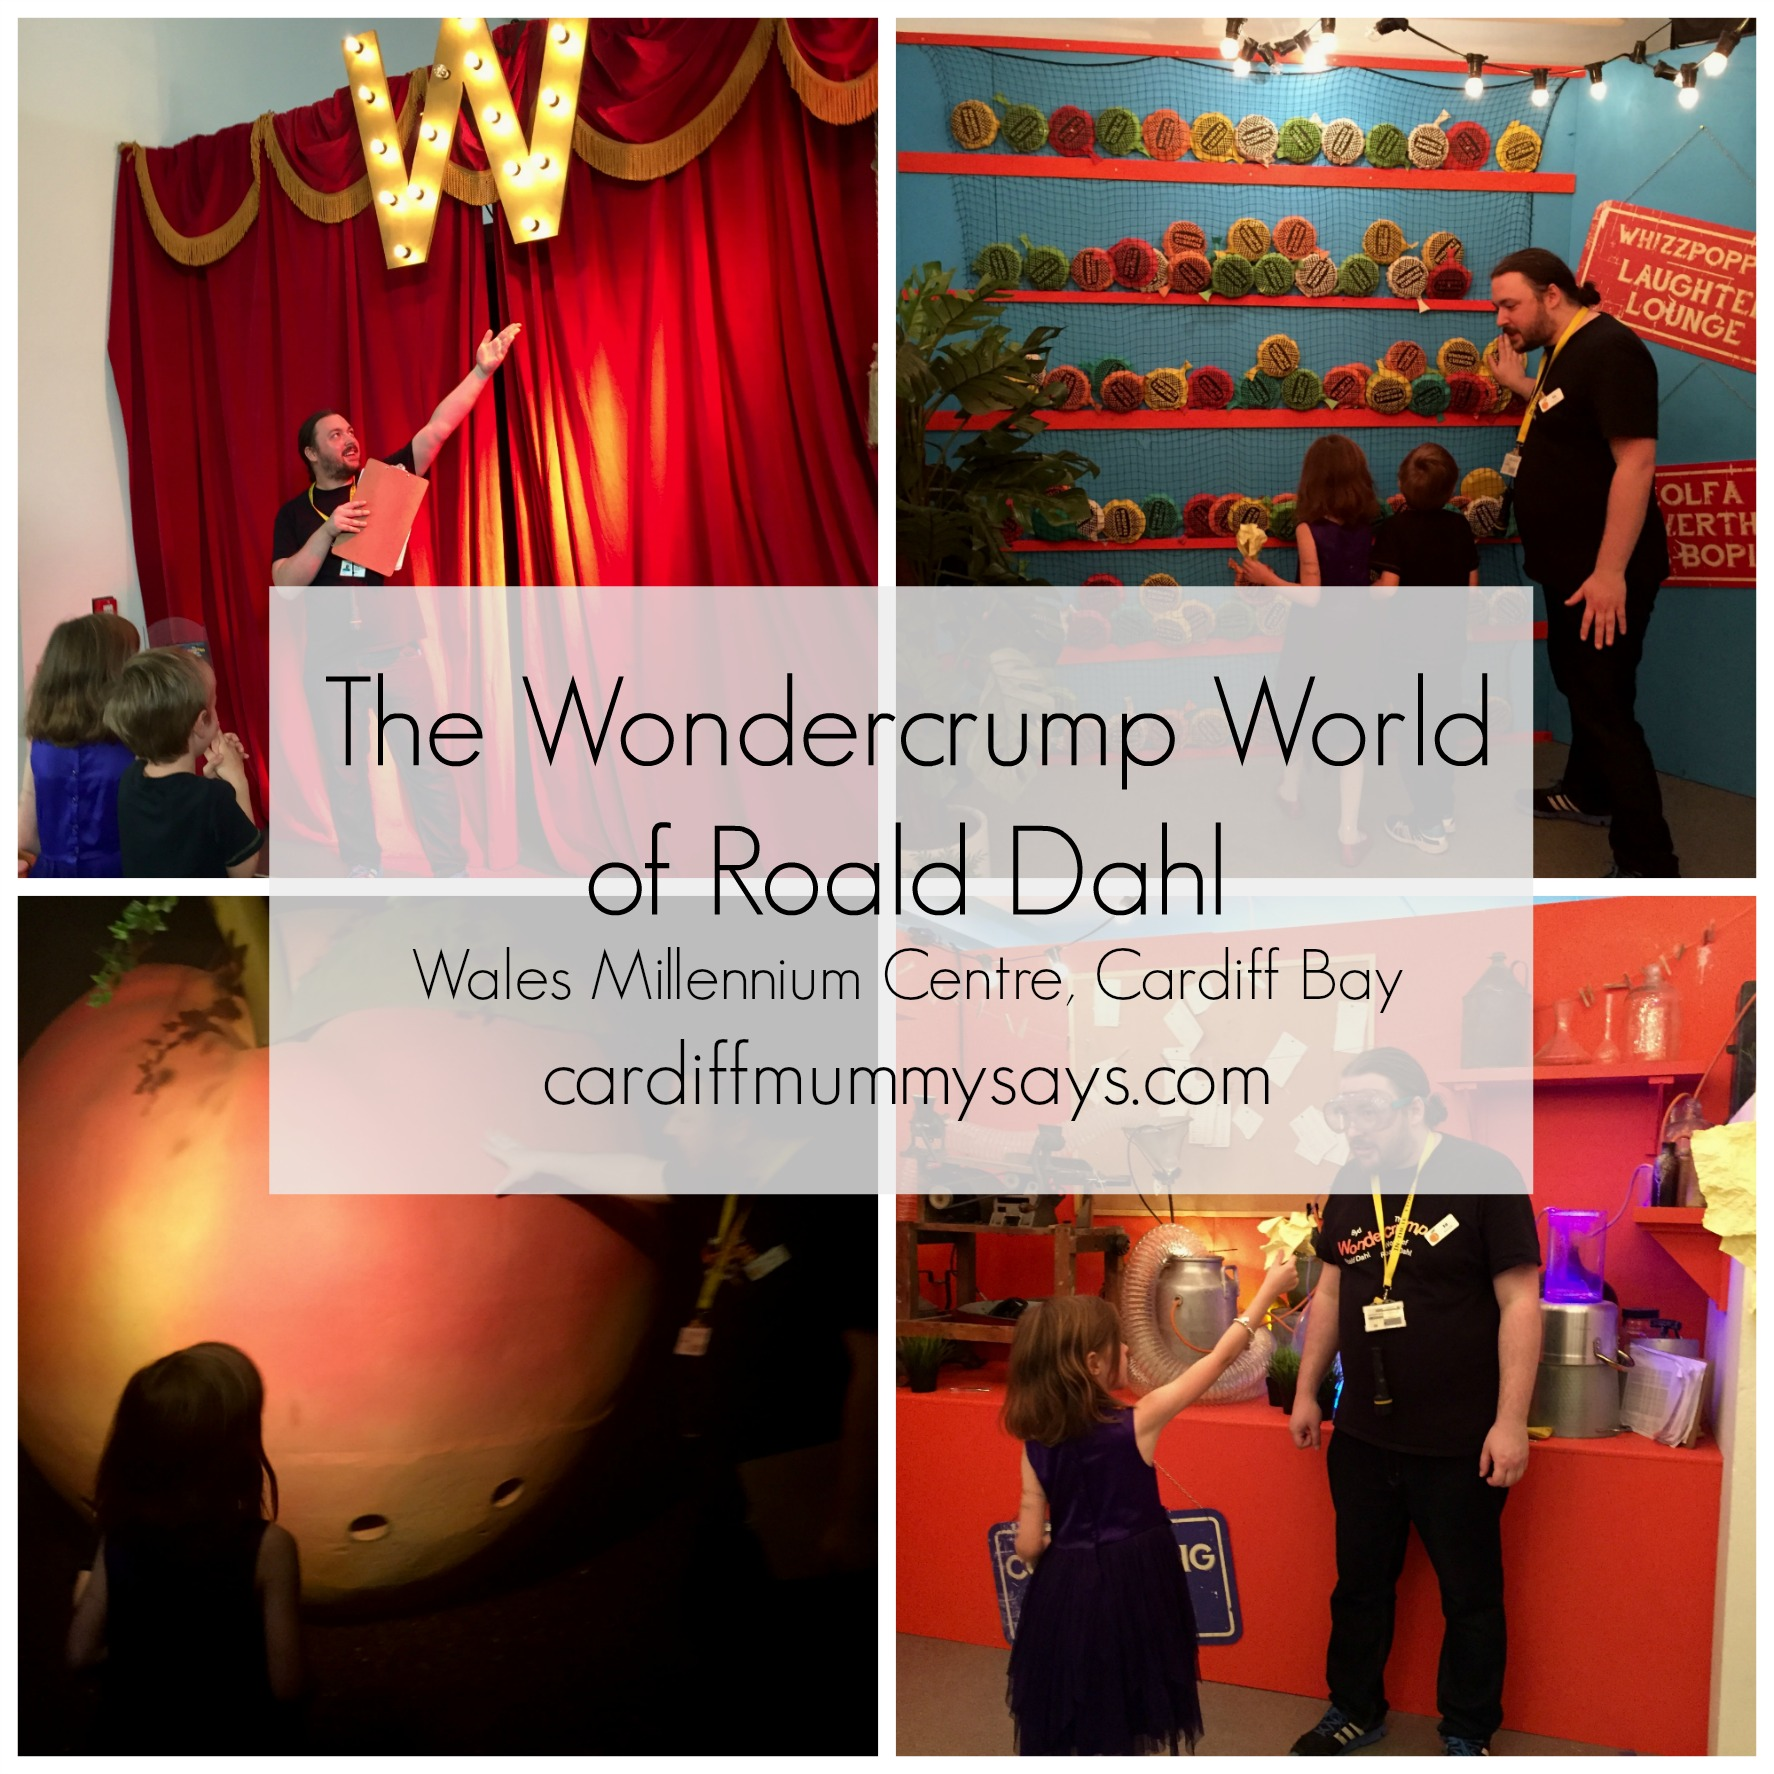 The Wondercrump World Of Roald Dahl